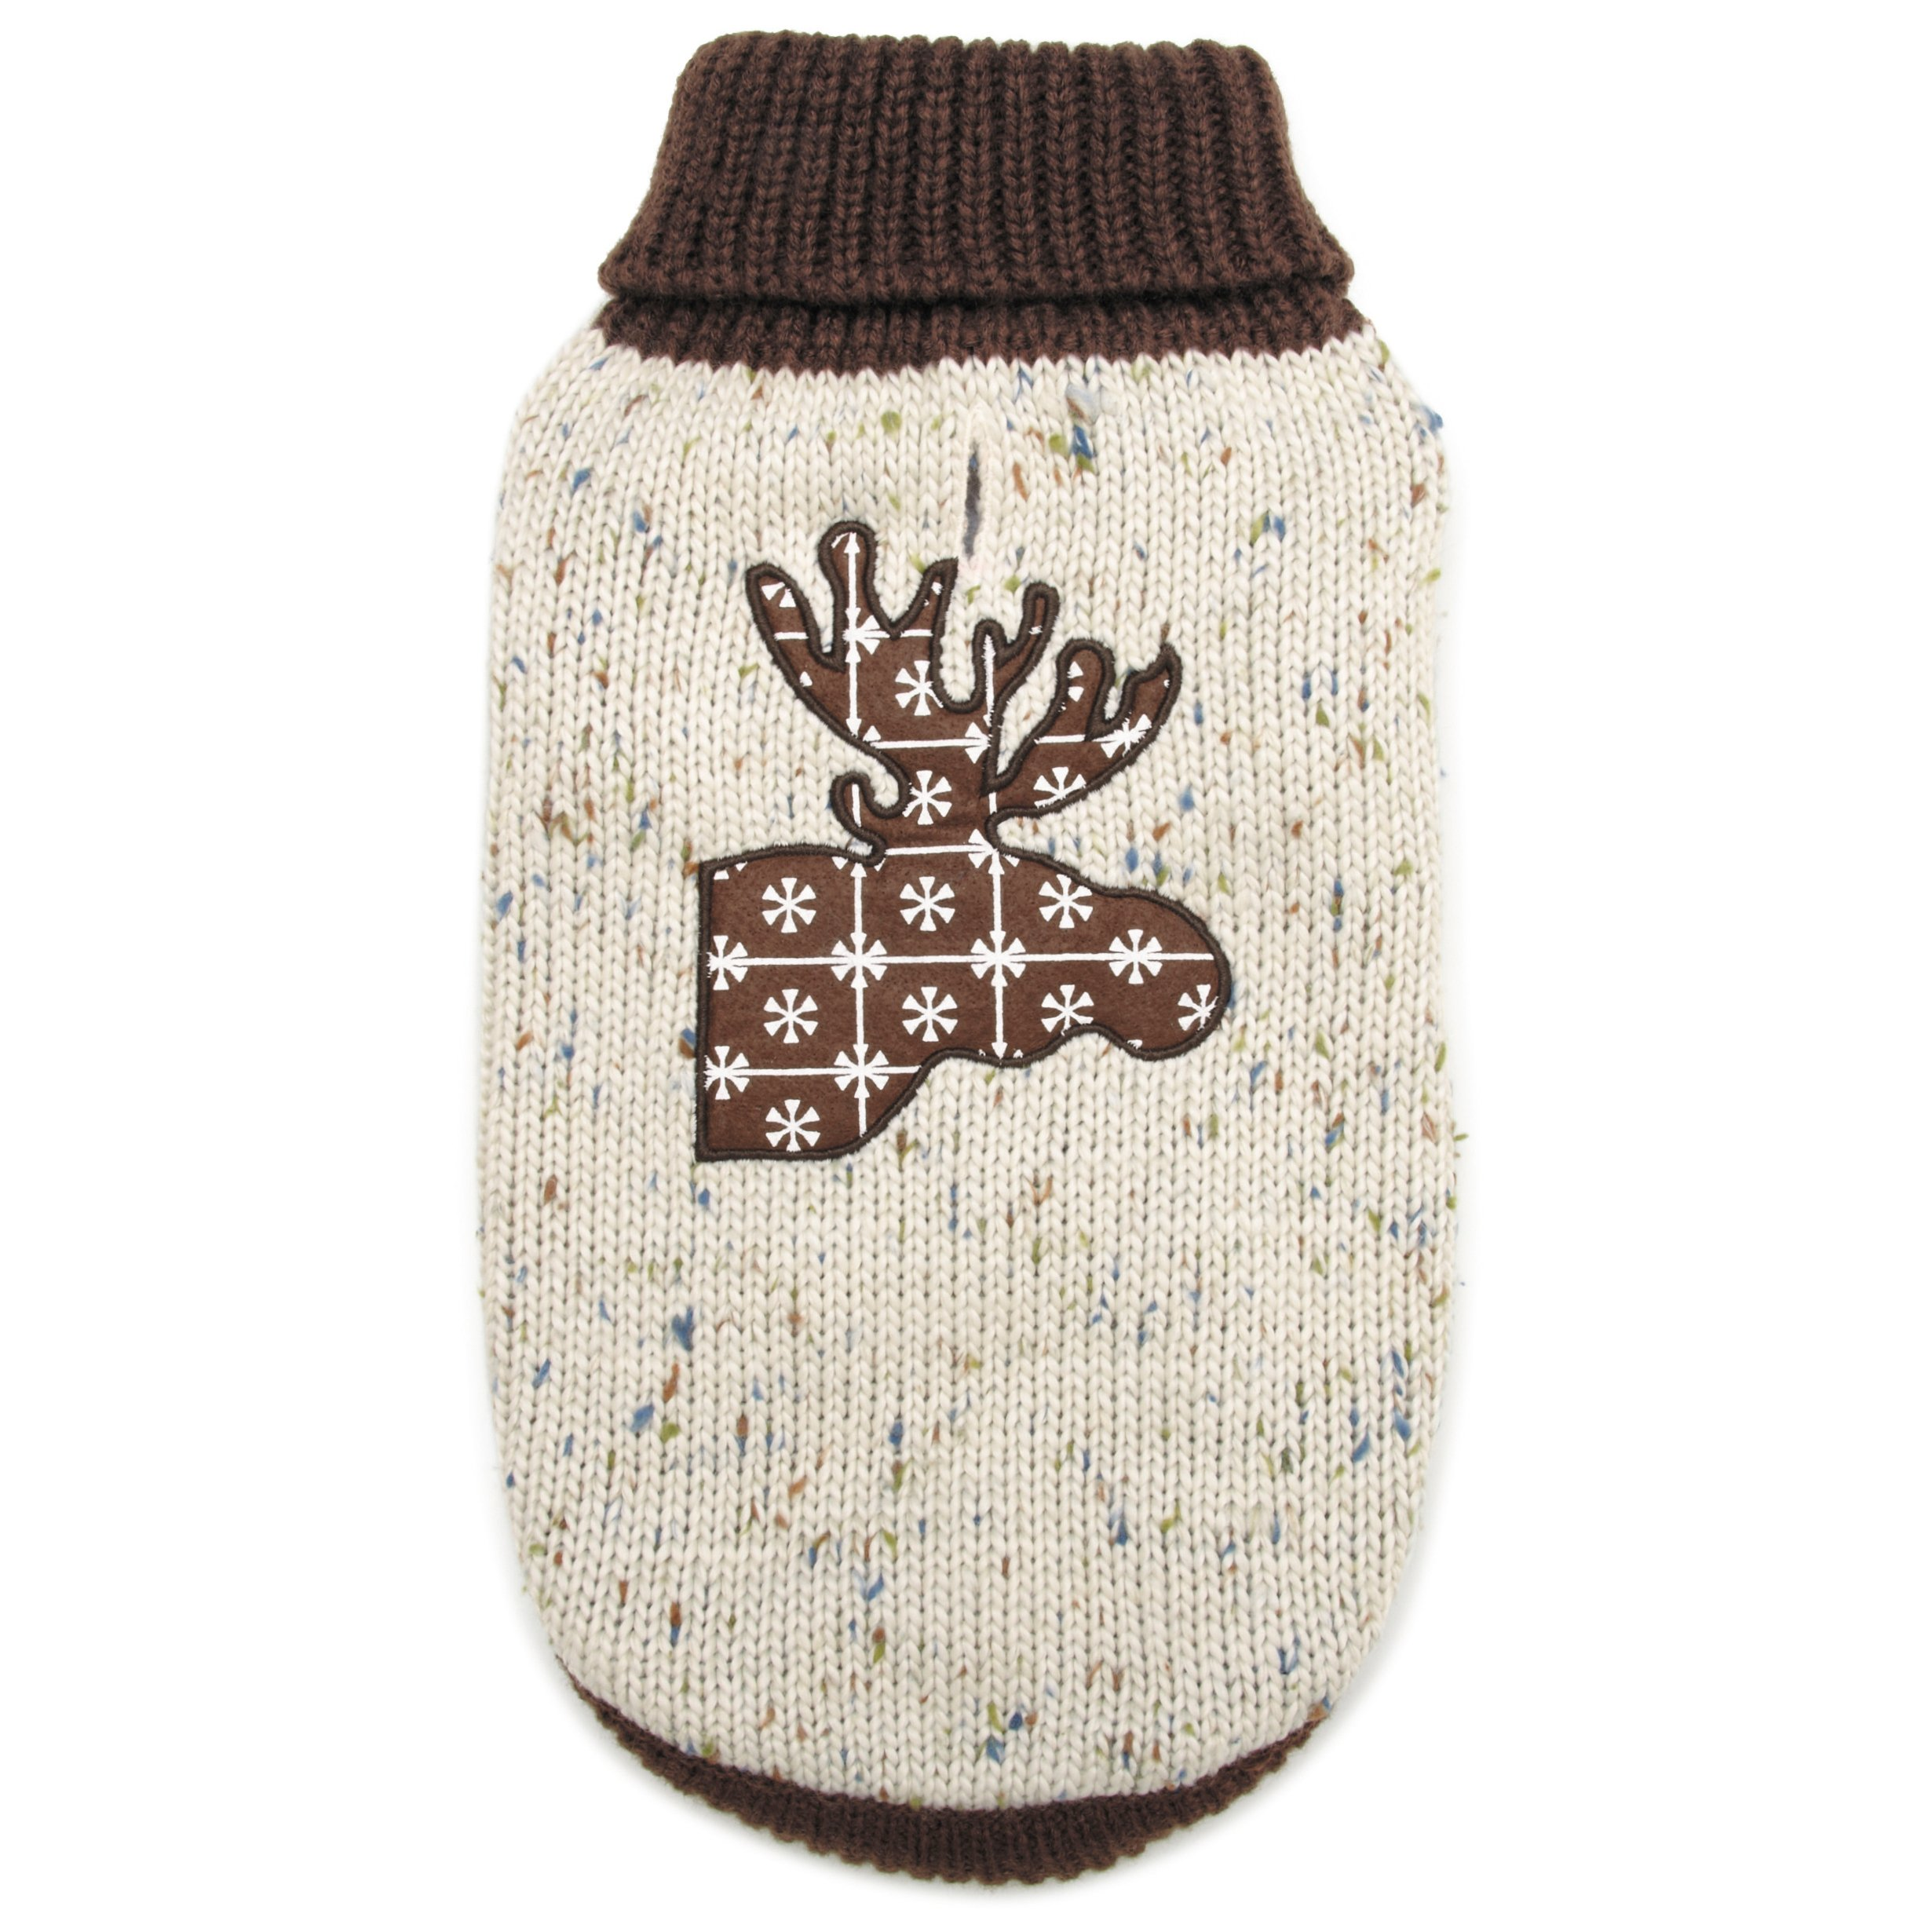 Zack & Zoey Northern Woods Moose Sweater, XX-Small